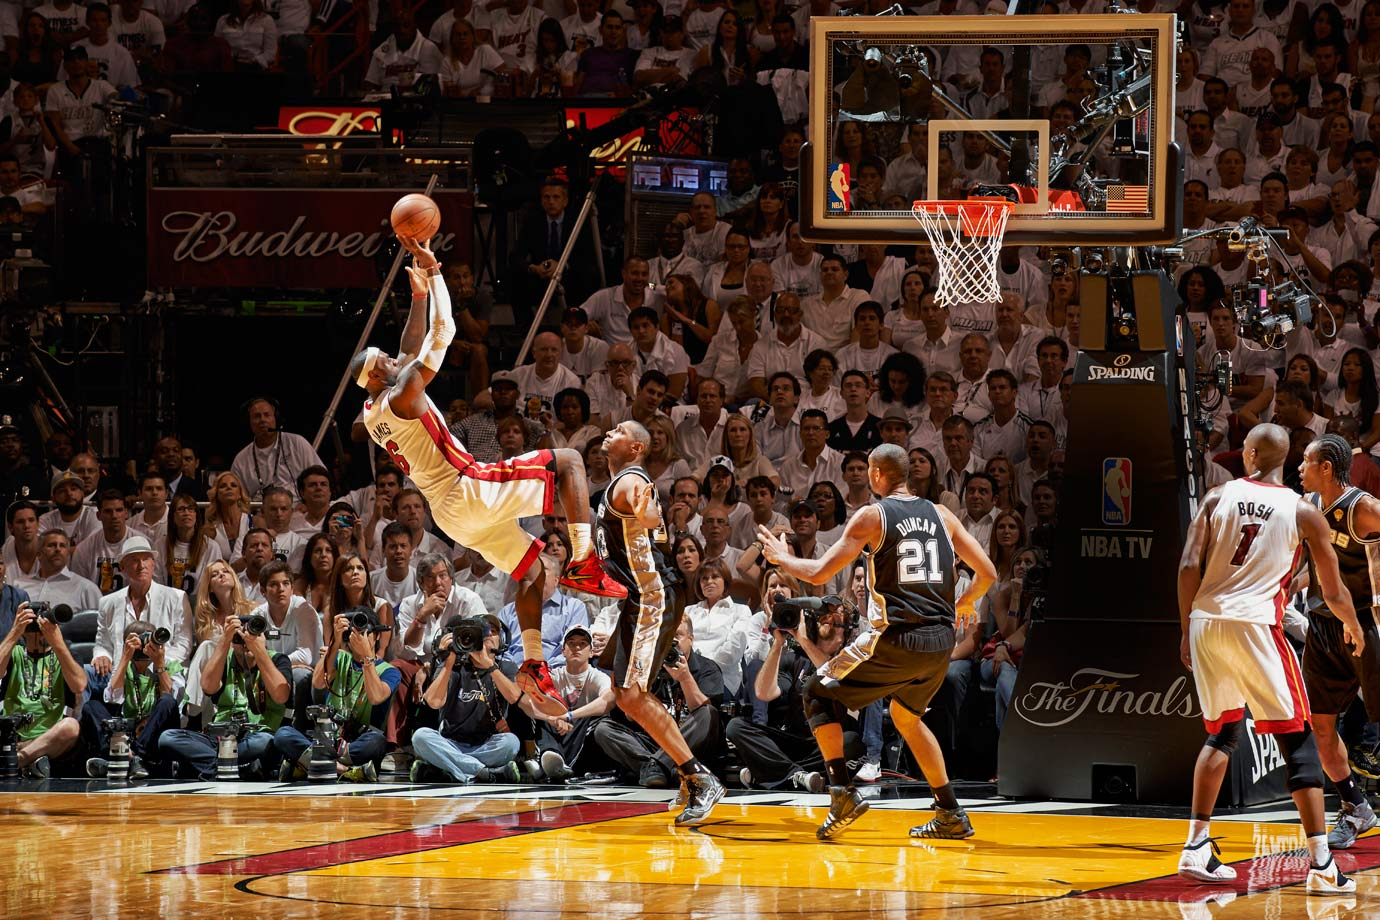 While far from his usual dominant self, LeBron James still managed to turn in a triple-double as the Heat notched a thrilling 103-100 overtime victory. Helped by Ray Allen's tying three-pointer with 5.2 seconds remaining in regulation, James overcame a couple of crucial turnovers in the final minutes to finish with 32 points, 11 assists and 10 rebounds and guide Miami to Game 7.